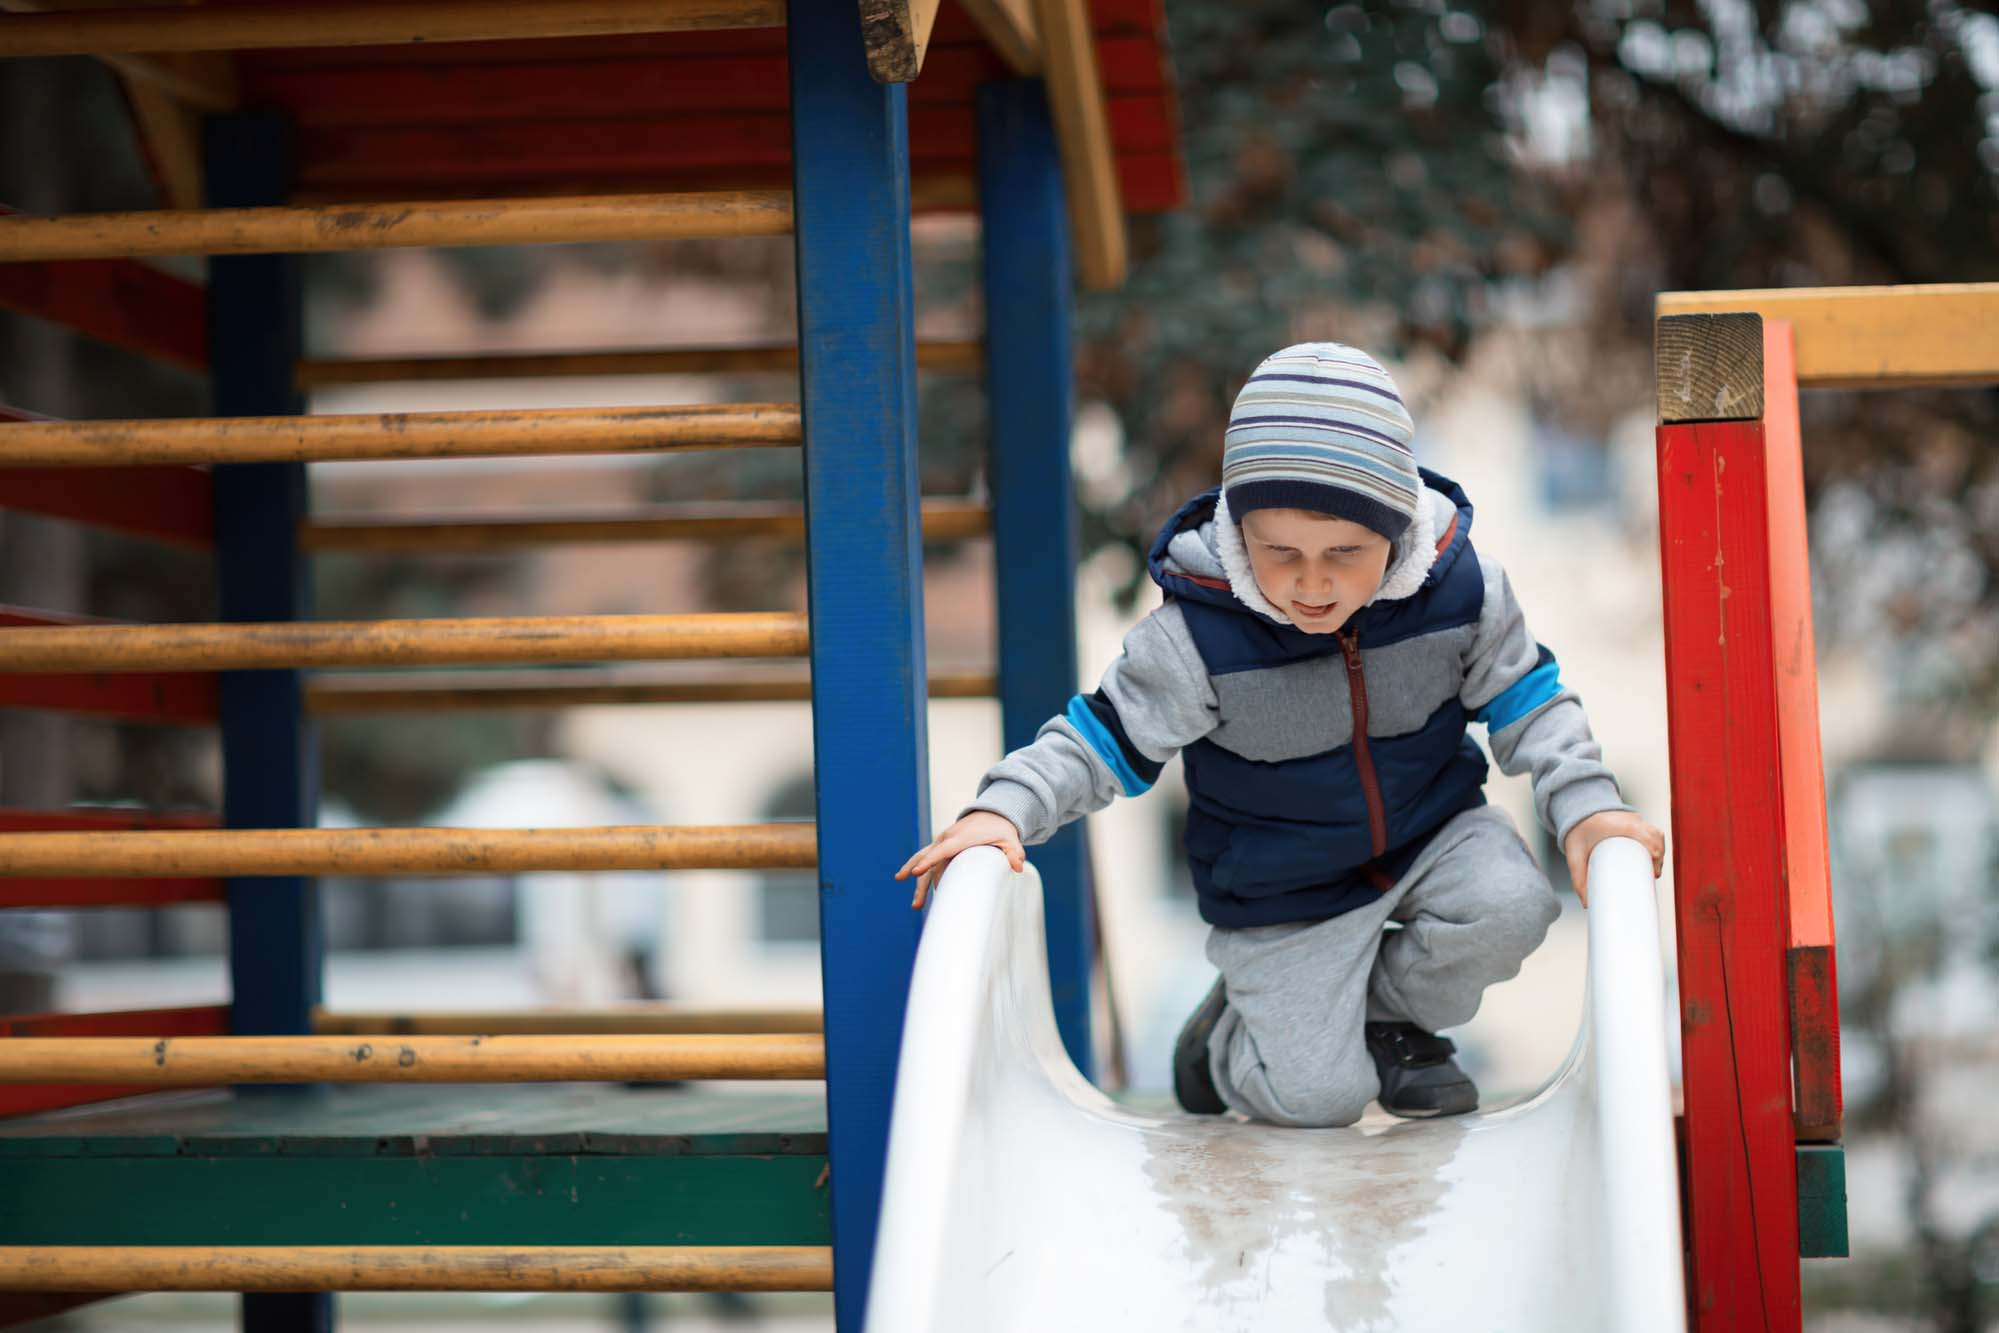 It's actually really dangerous to go down a slide with your kid